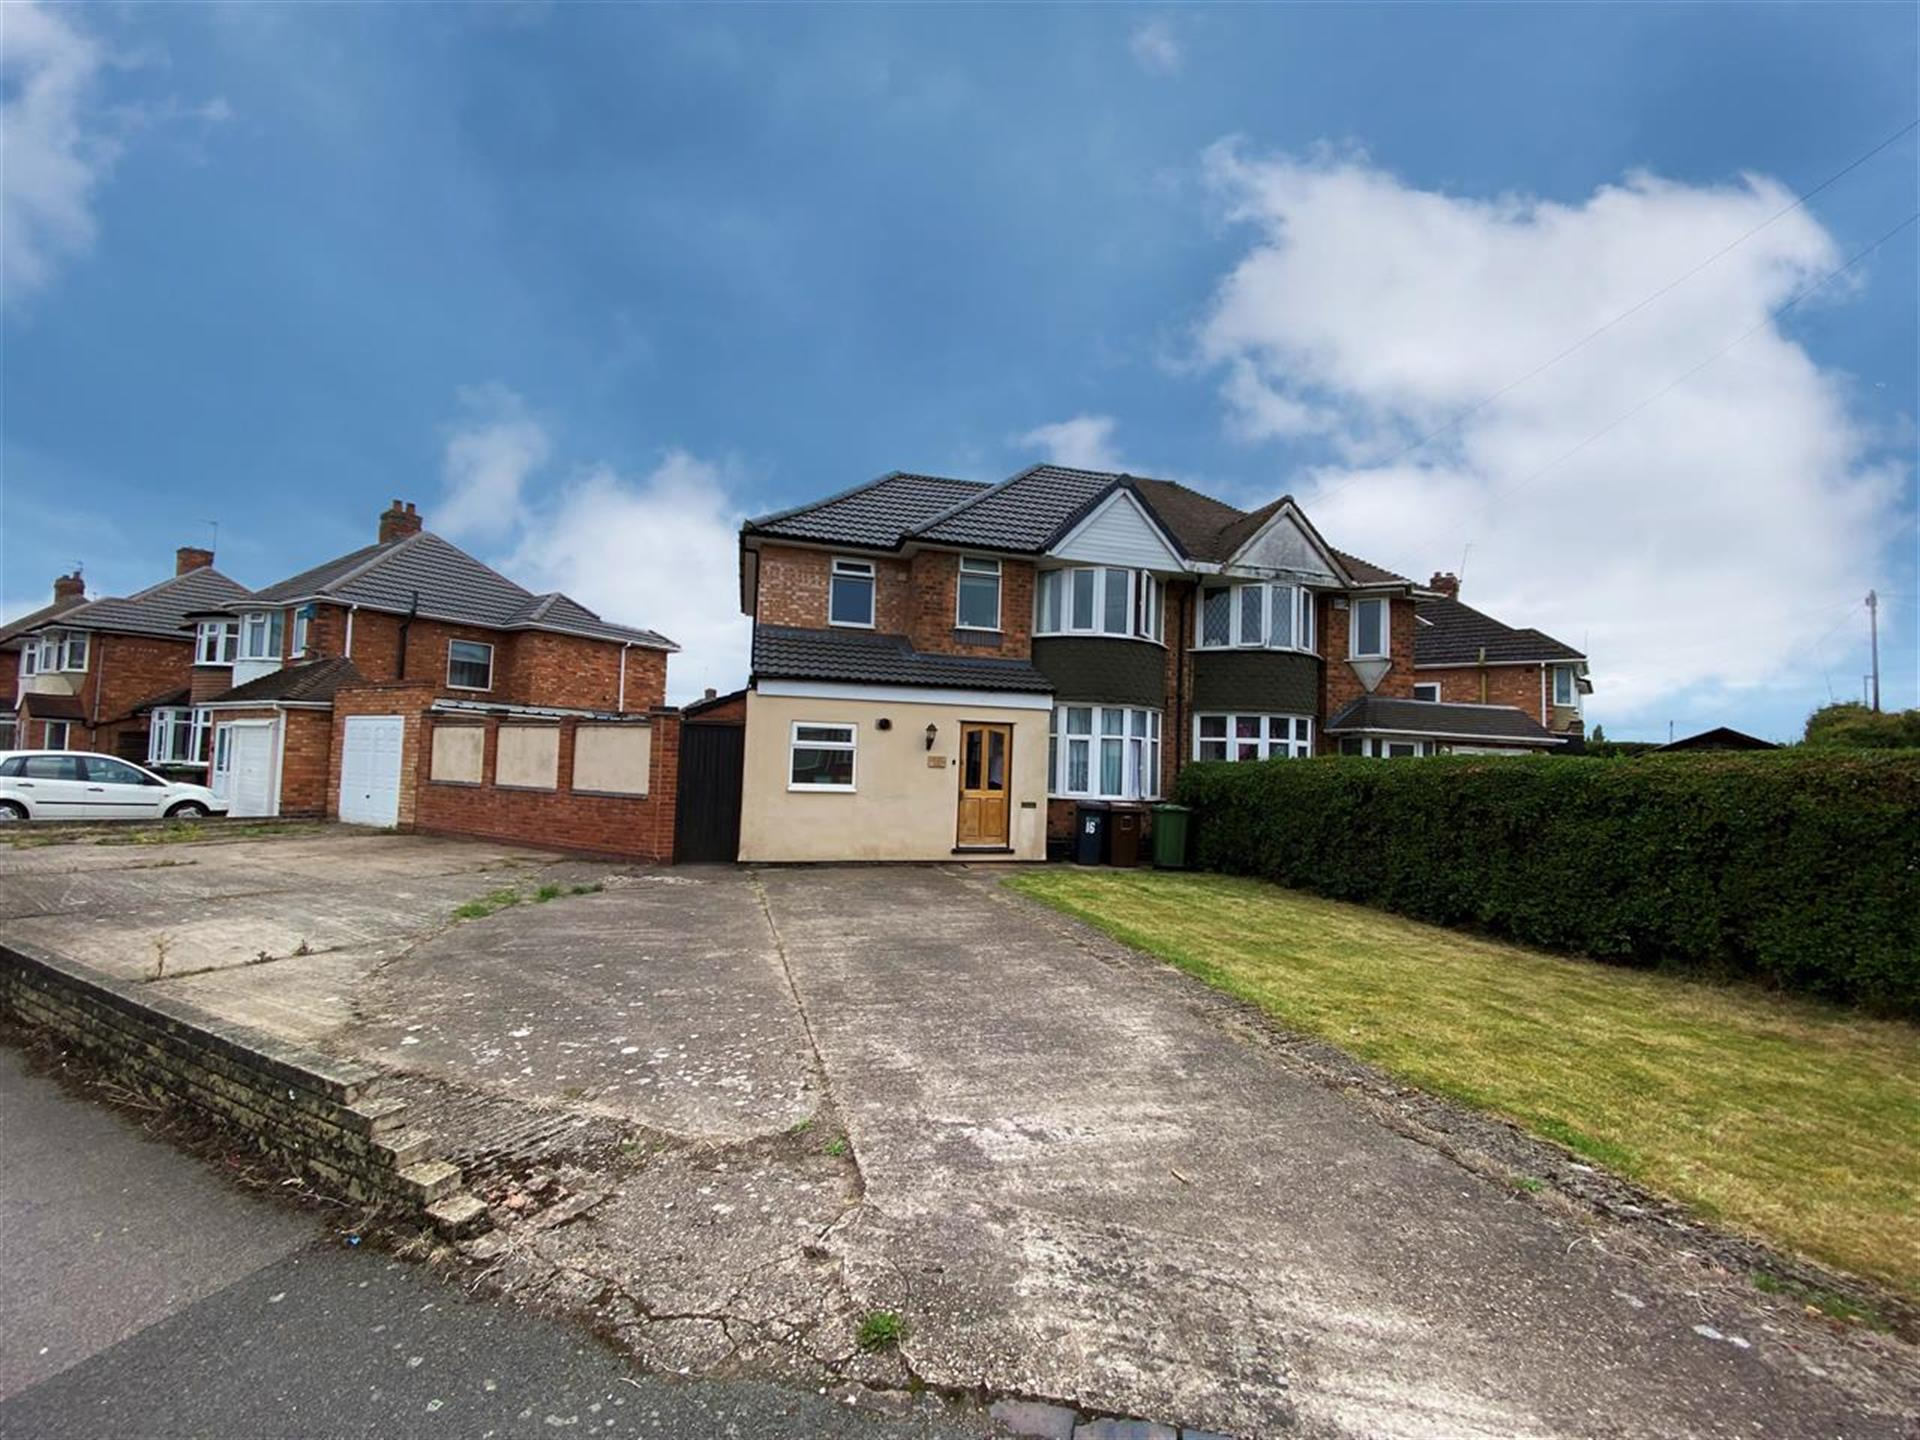 3 Bedroom Semi-detached House To Rent - Main Picture